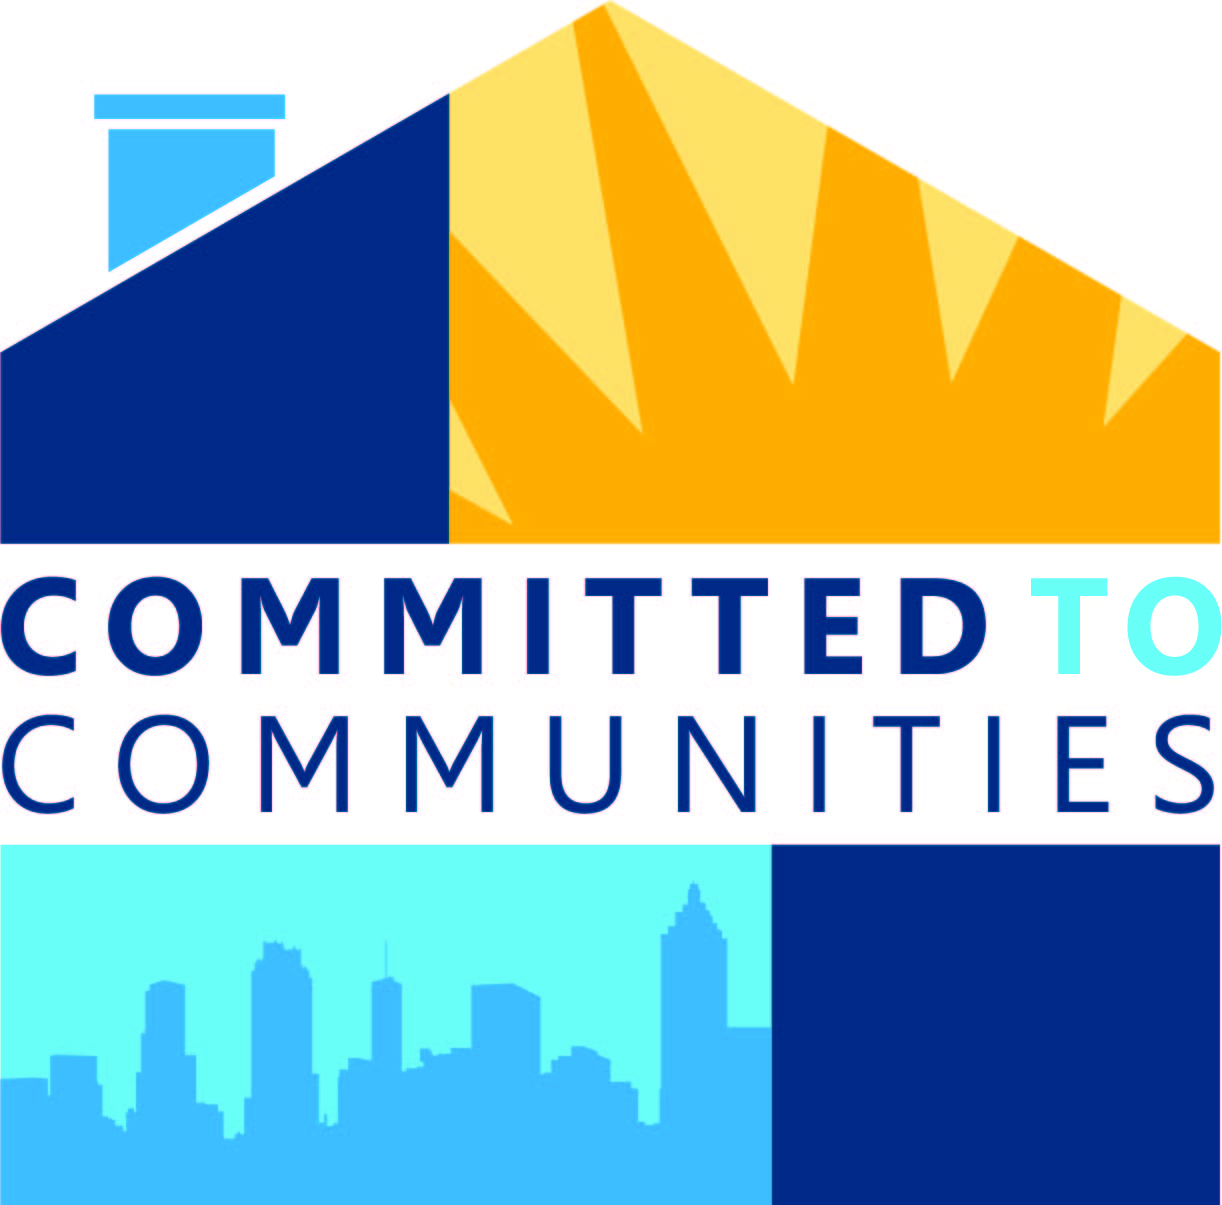 Committed to Communities